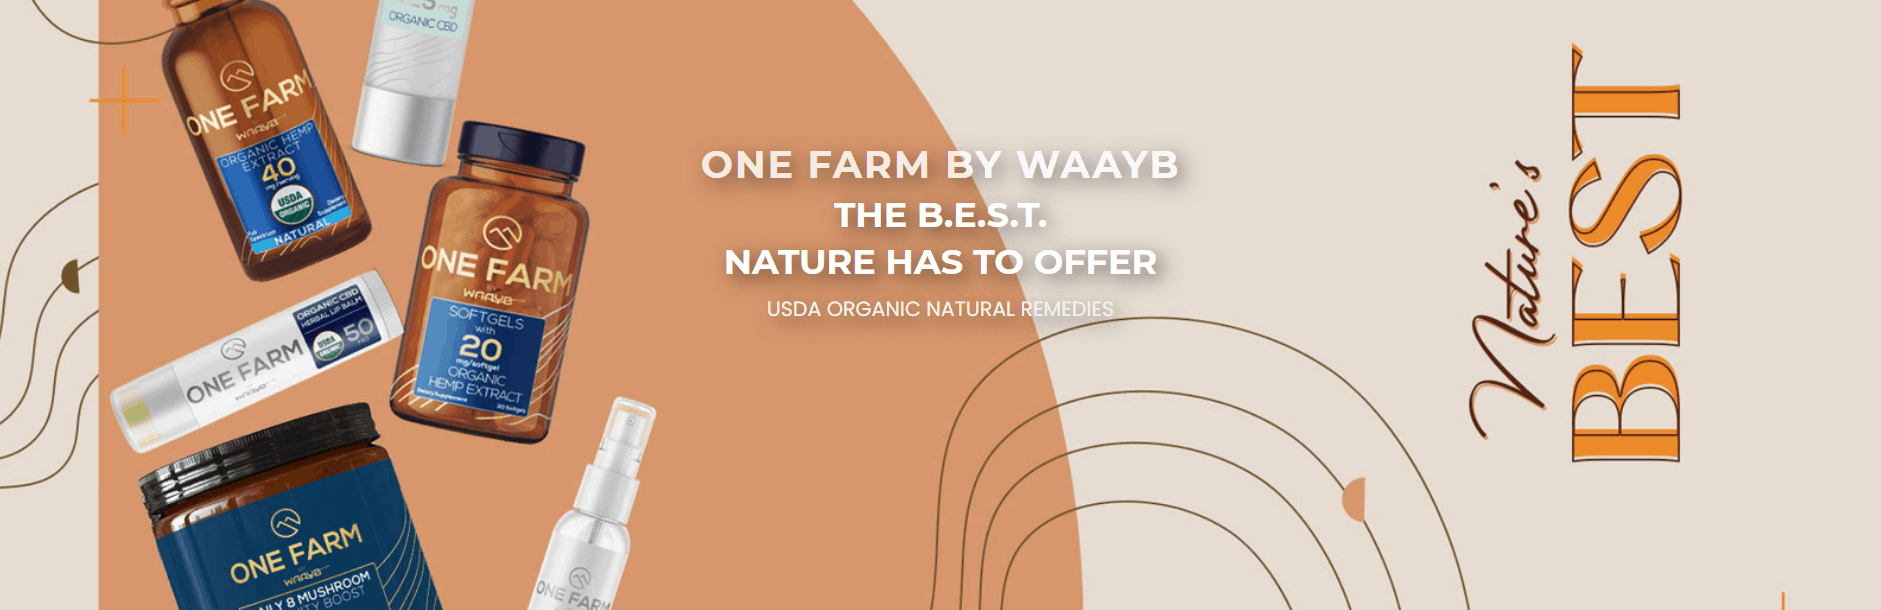 One Farm CBD Coupons Our Products